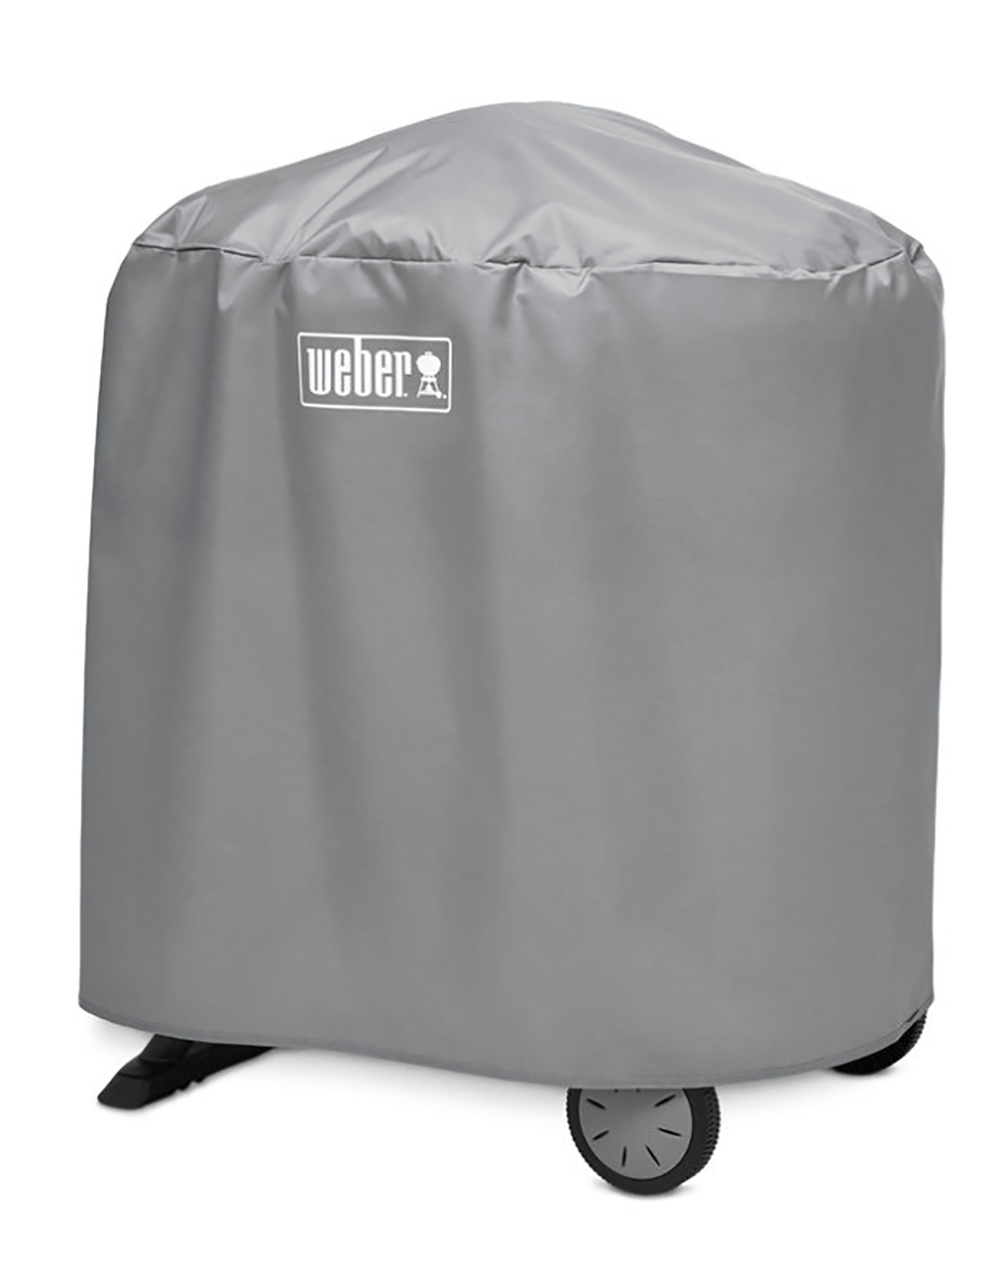 Weber Barbecue Cover Fits Q1000/2000 with stand (7177)